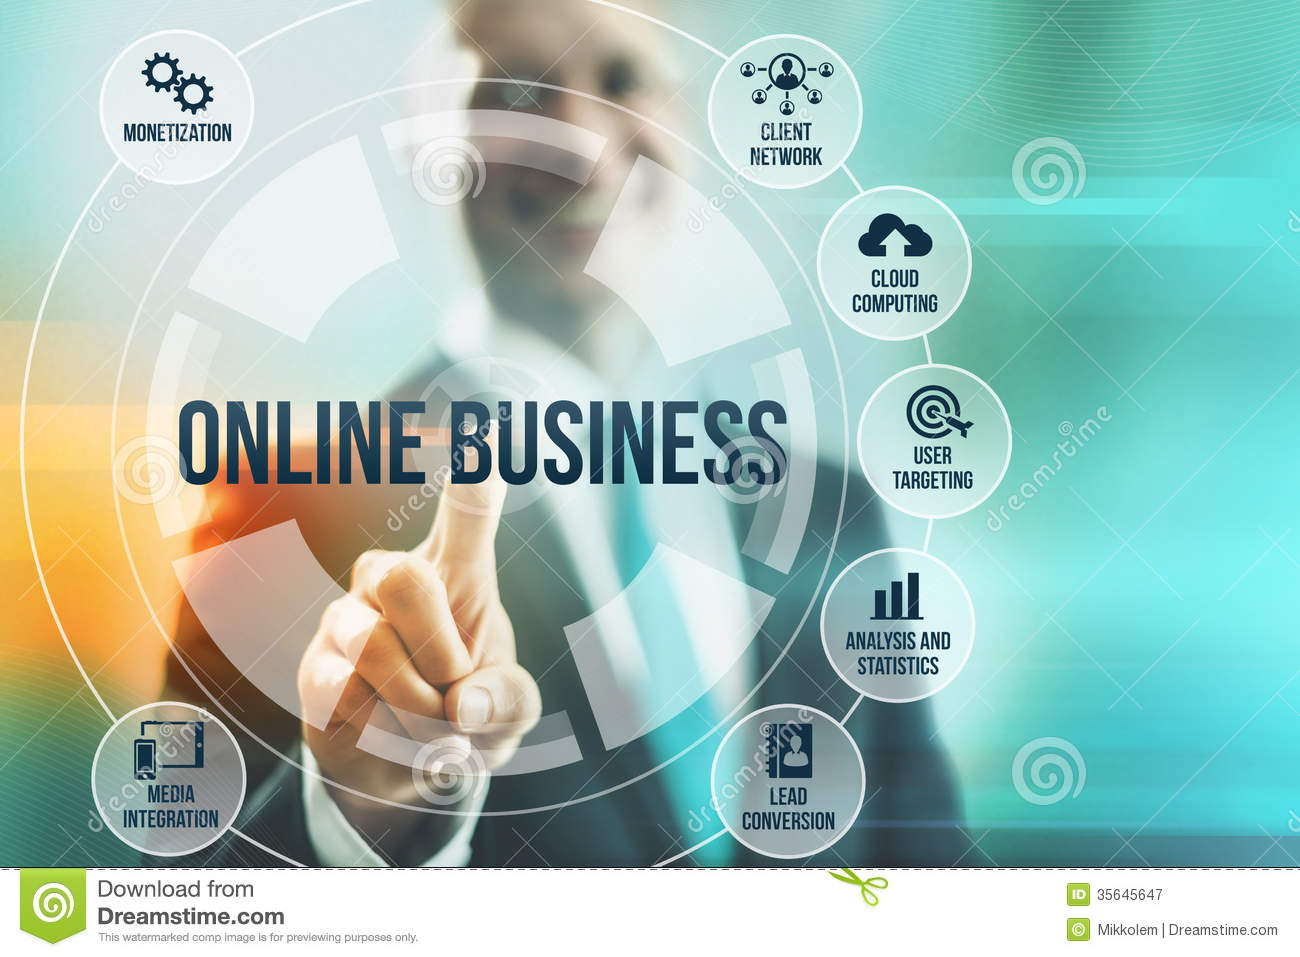 Online Business Royalty Free Stock Photography - Image: 35645647